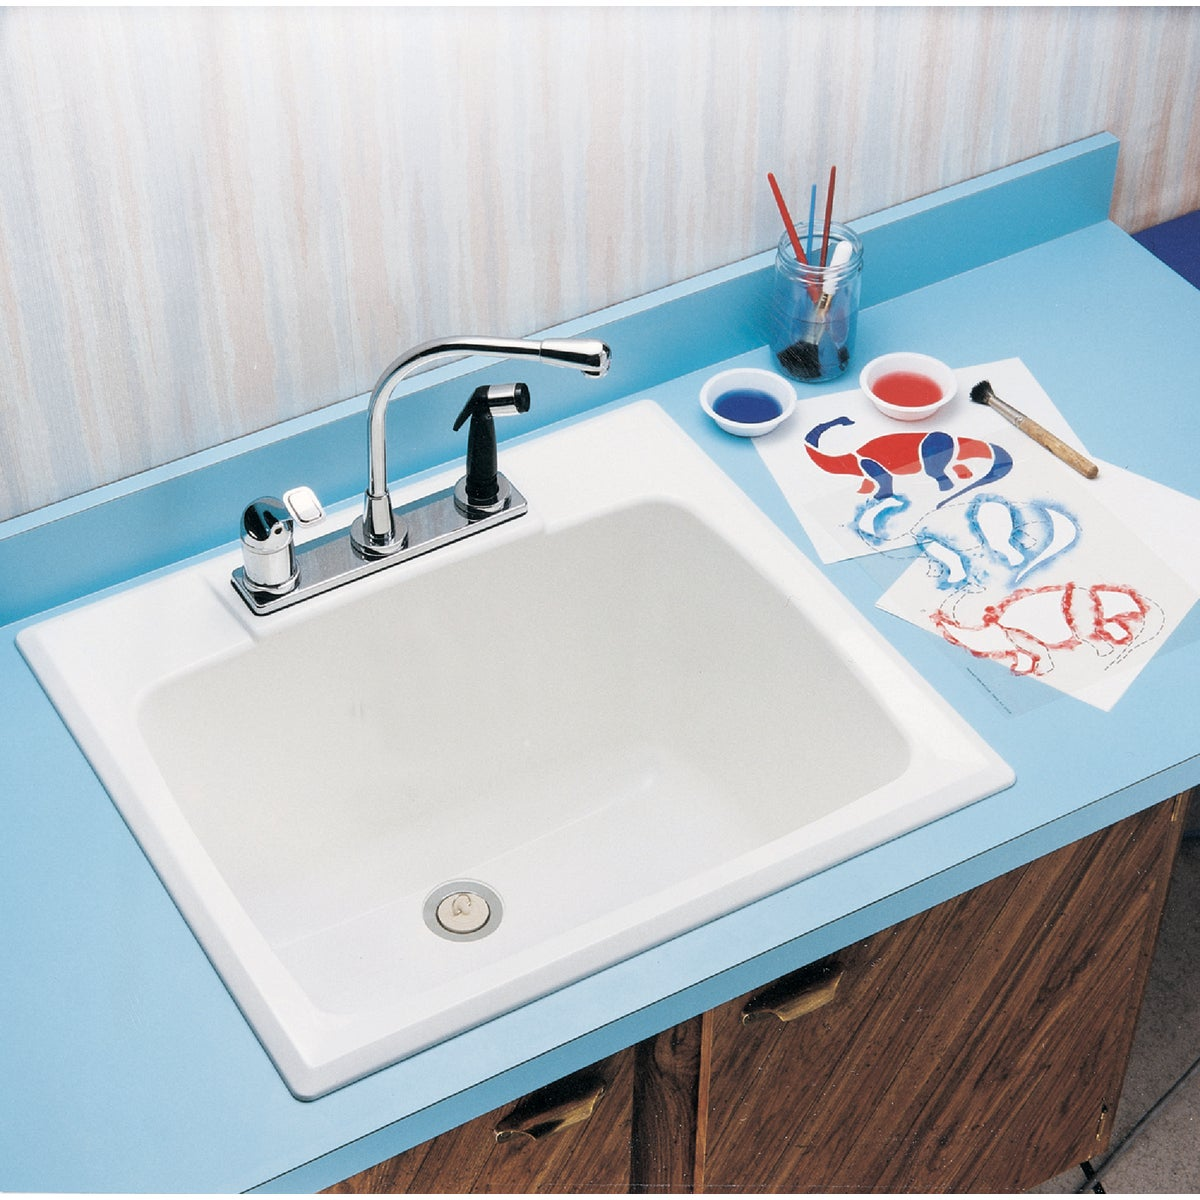 DROP-IN LAUNDRY TUB - 10 by E L Mustee